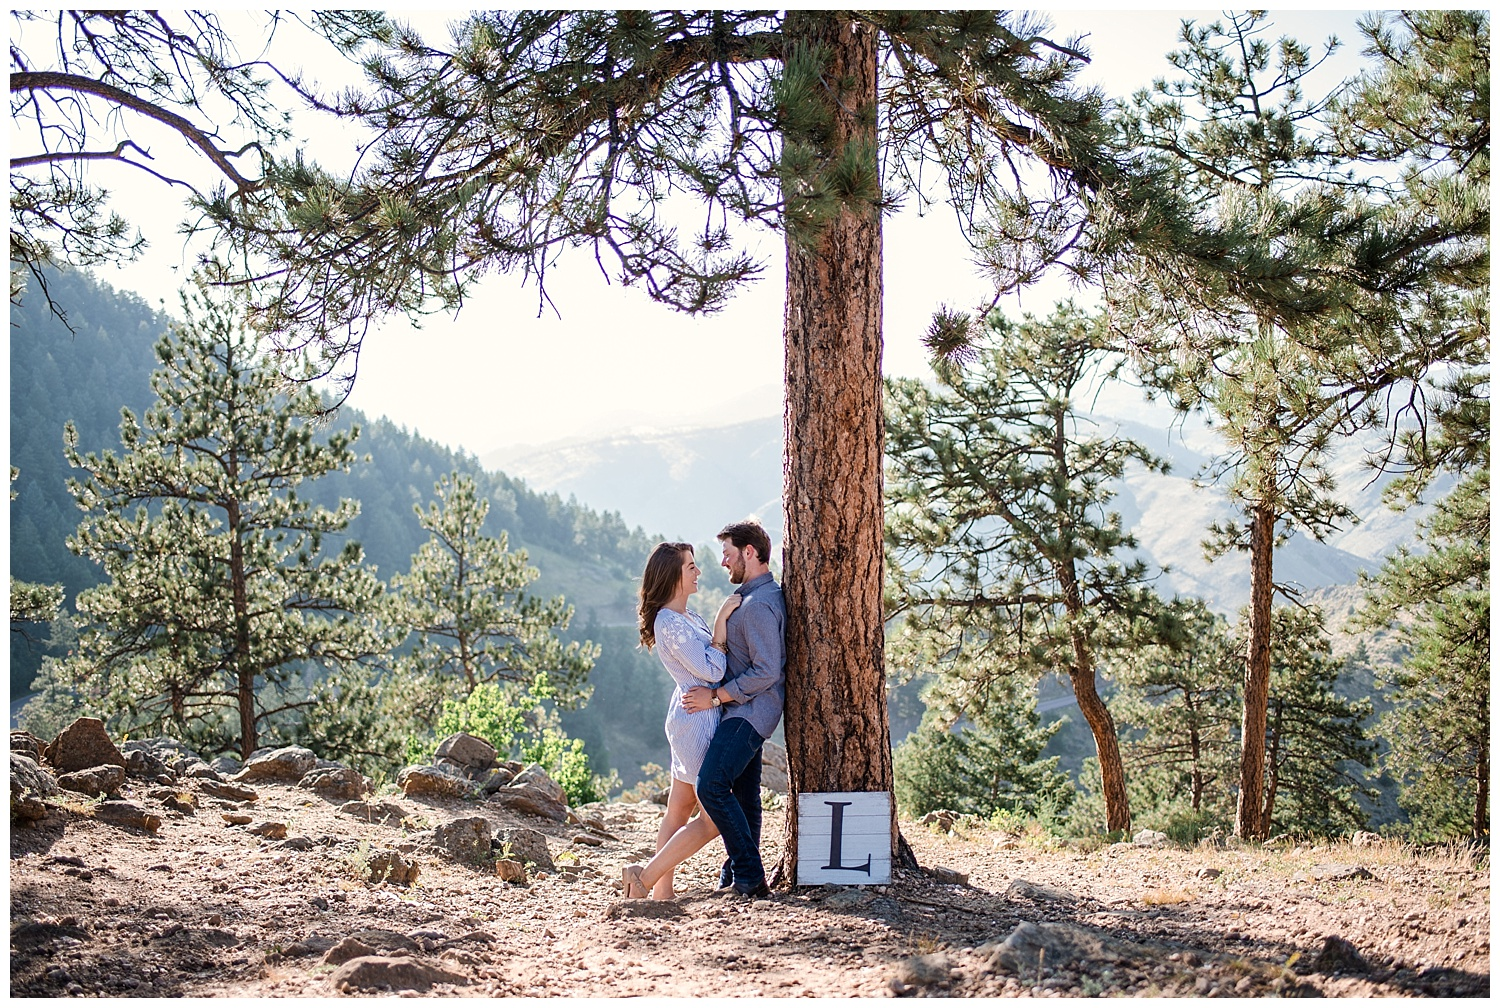 Romantic engagement photos at Lookout Mountain, Colorado Wedding Photographer, Downtown Denver Photographer, Colorado Elopement Photographer, Rocky Mountain Wedding Photographer, Denver Engagement Photography,